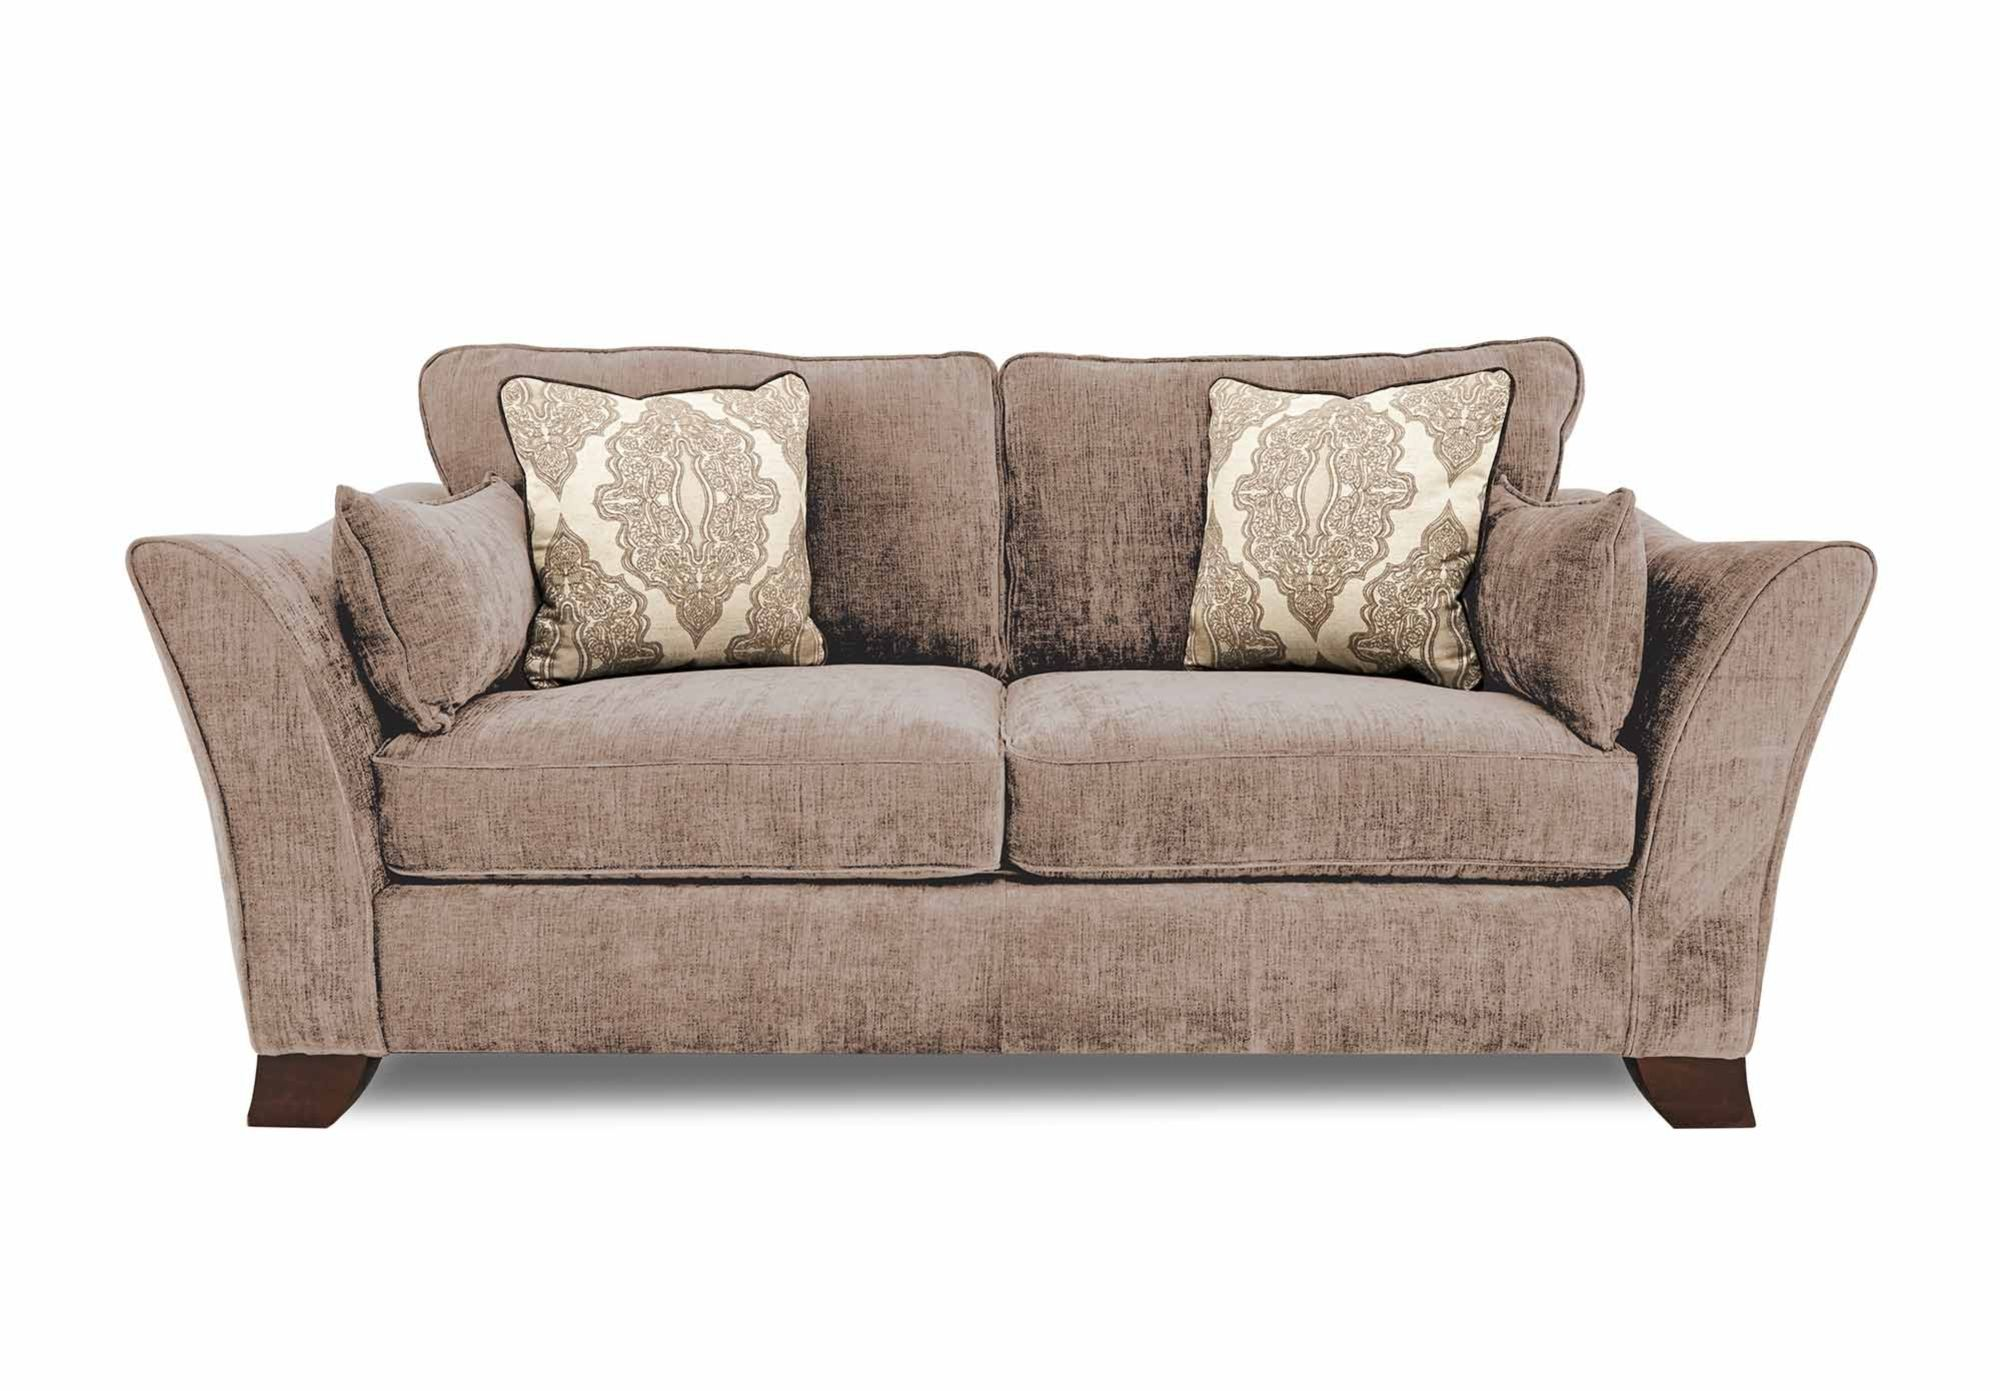 3 Seater Clic Back Sofa Annalise Upholstered Furniture At Village Gorgeous Living Room From